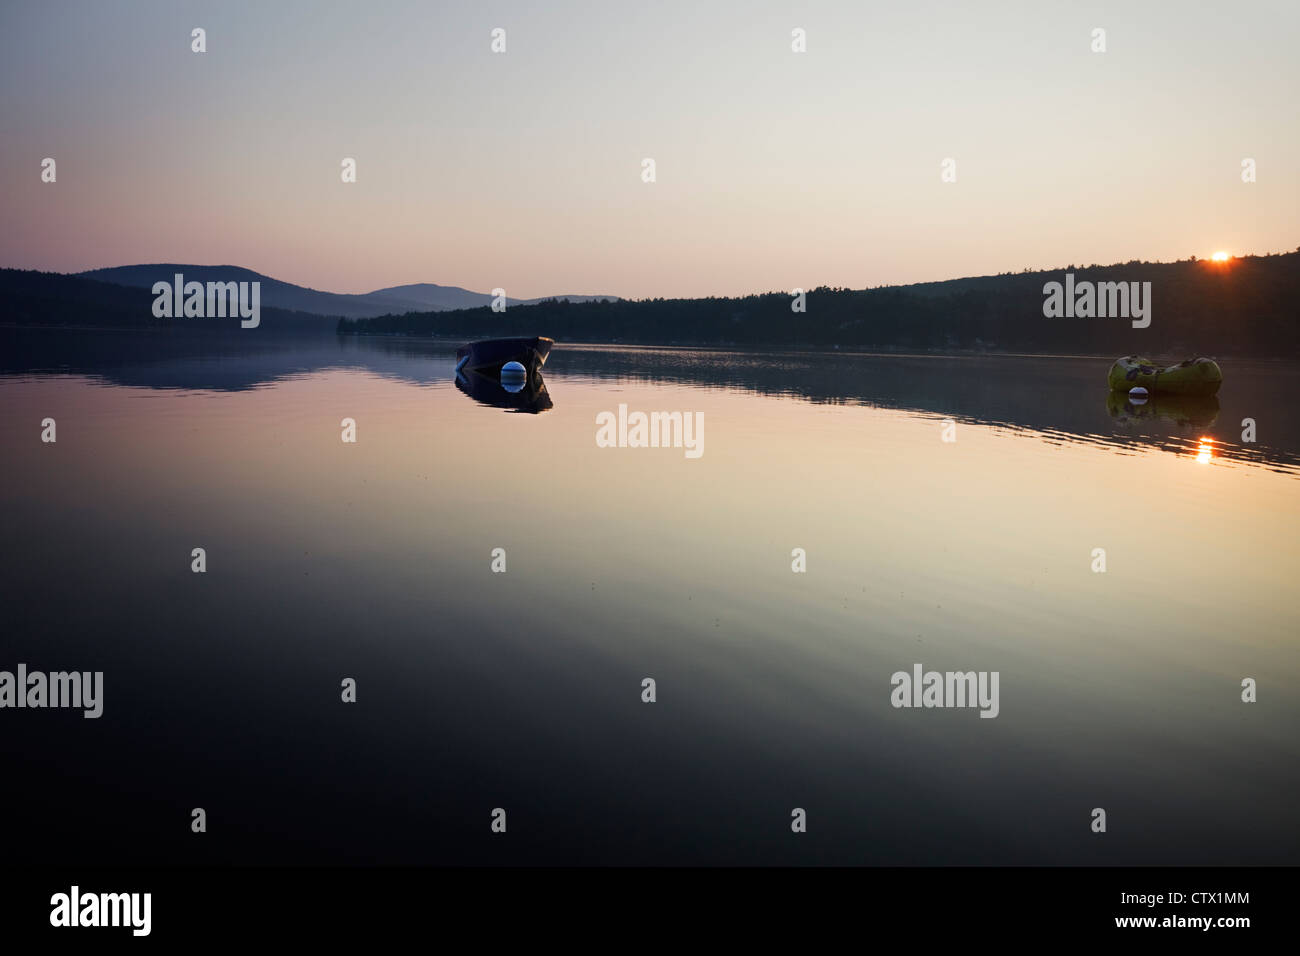 Sun rises over the hills on a calm Summer morning at the lake - Stock Image